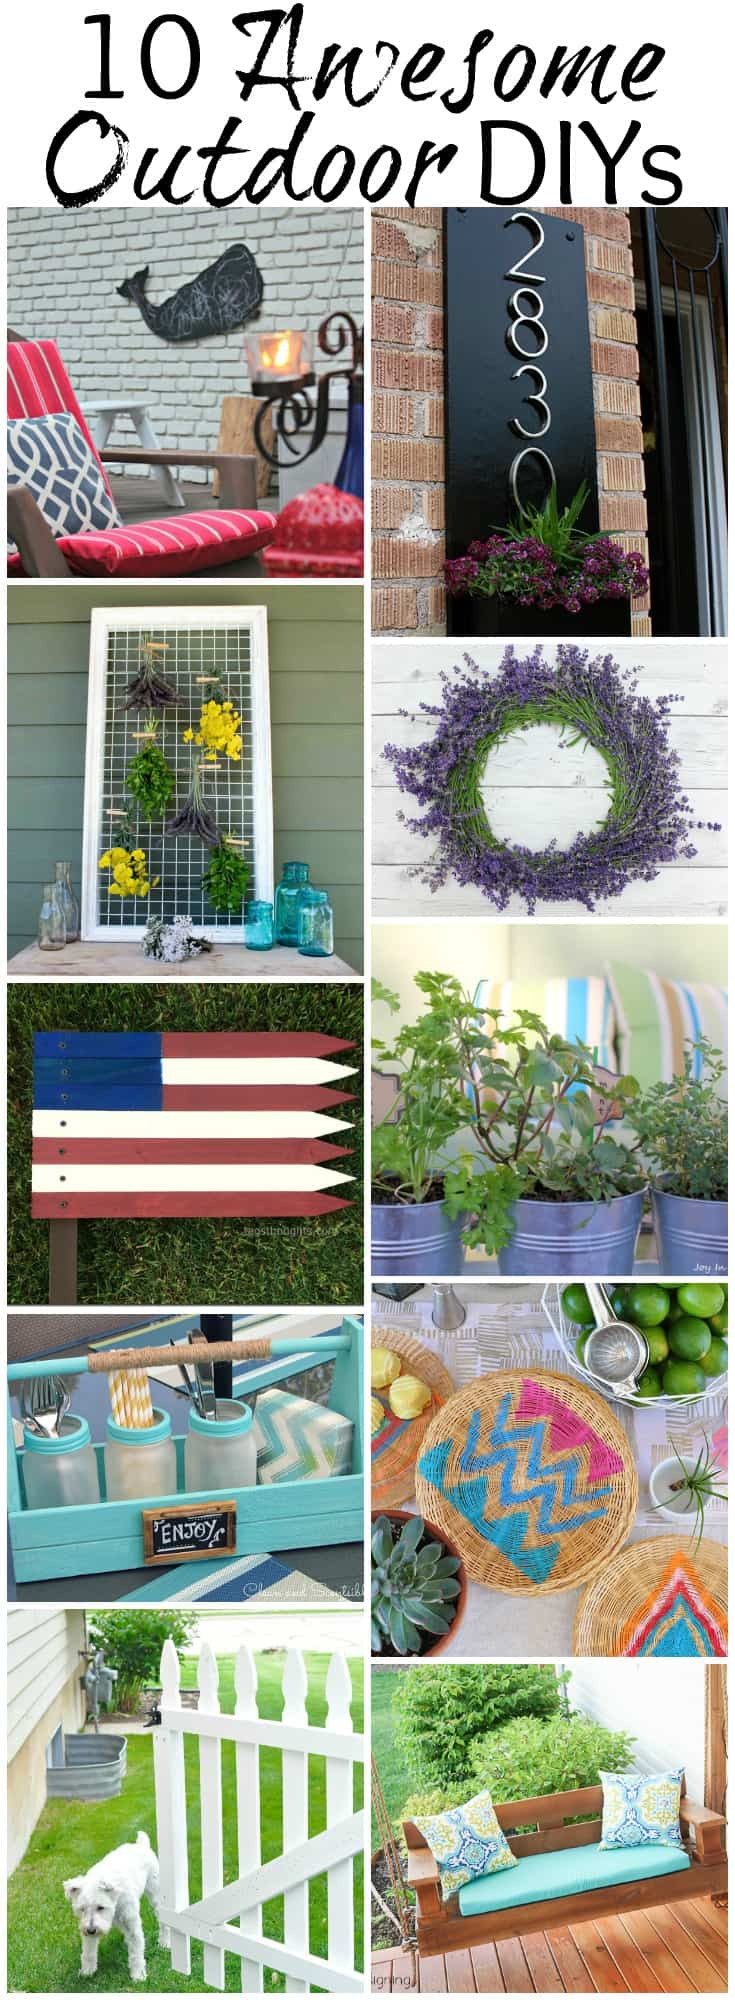 10 Awesome Outdoor DIYs